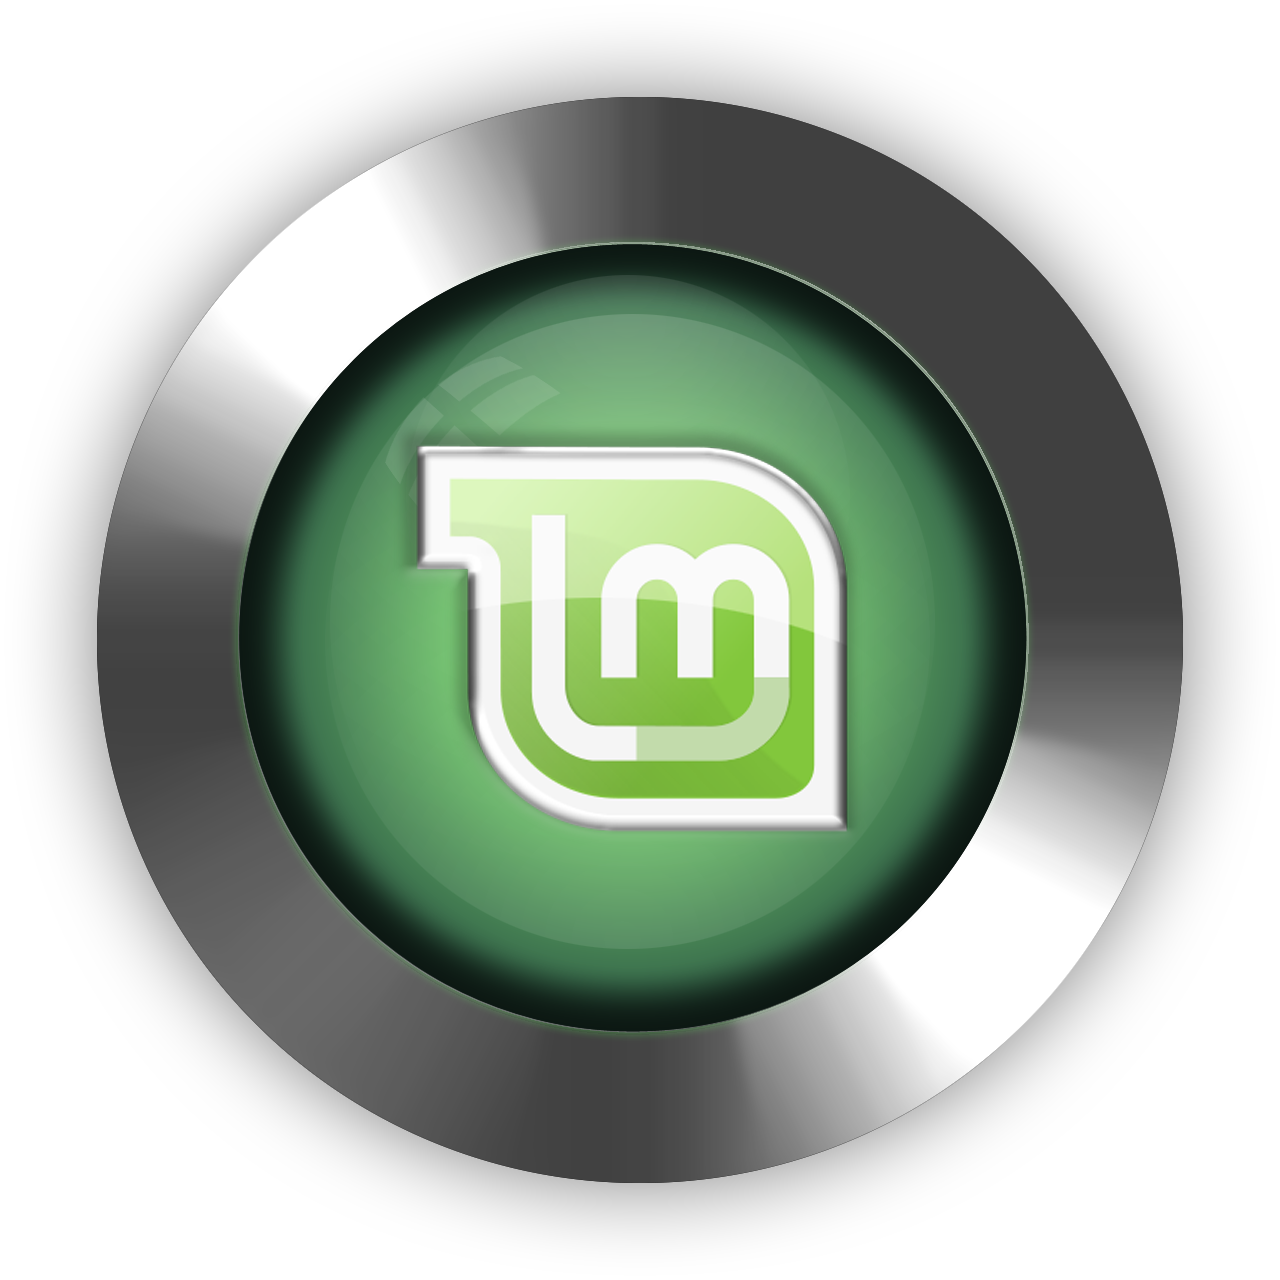 Sidd speaks katya review. Linux mint logo png png black and white download